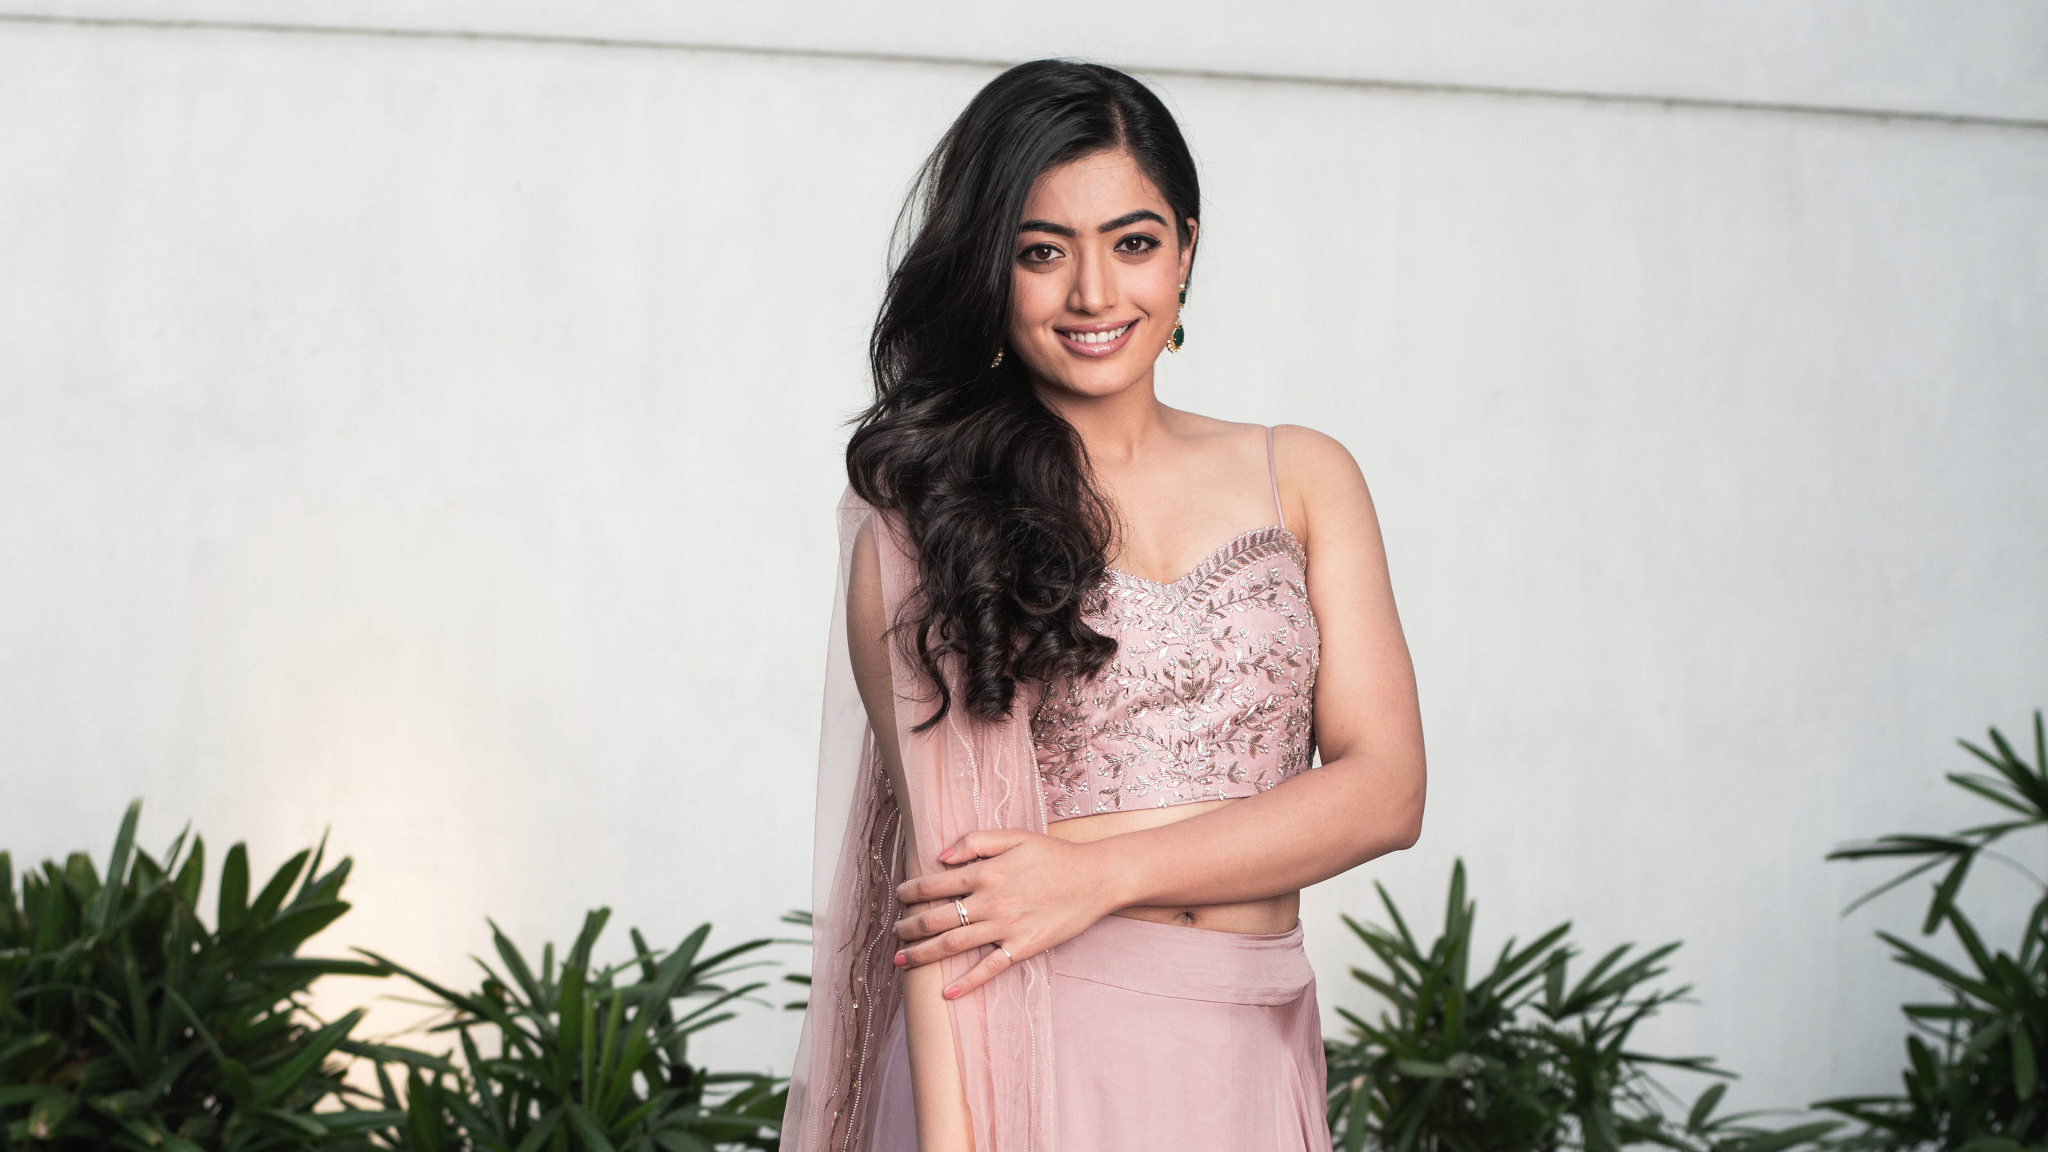 2048x1152 Rashmika Mandanna 2019 2048x1152 Resolution Wallpapers